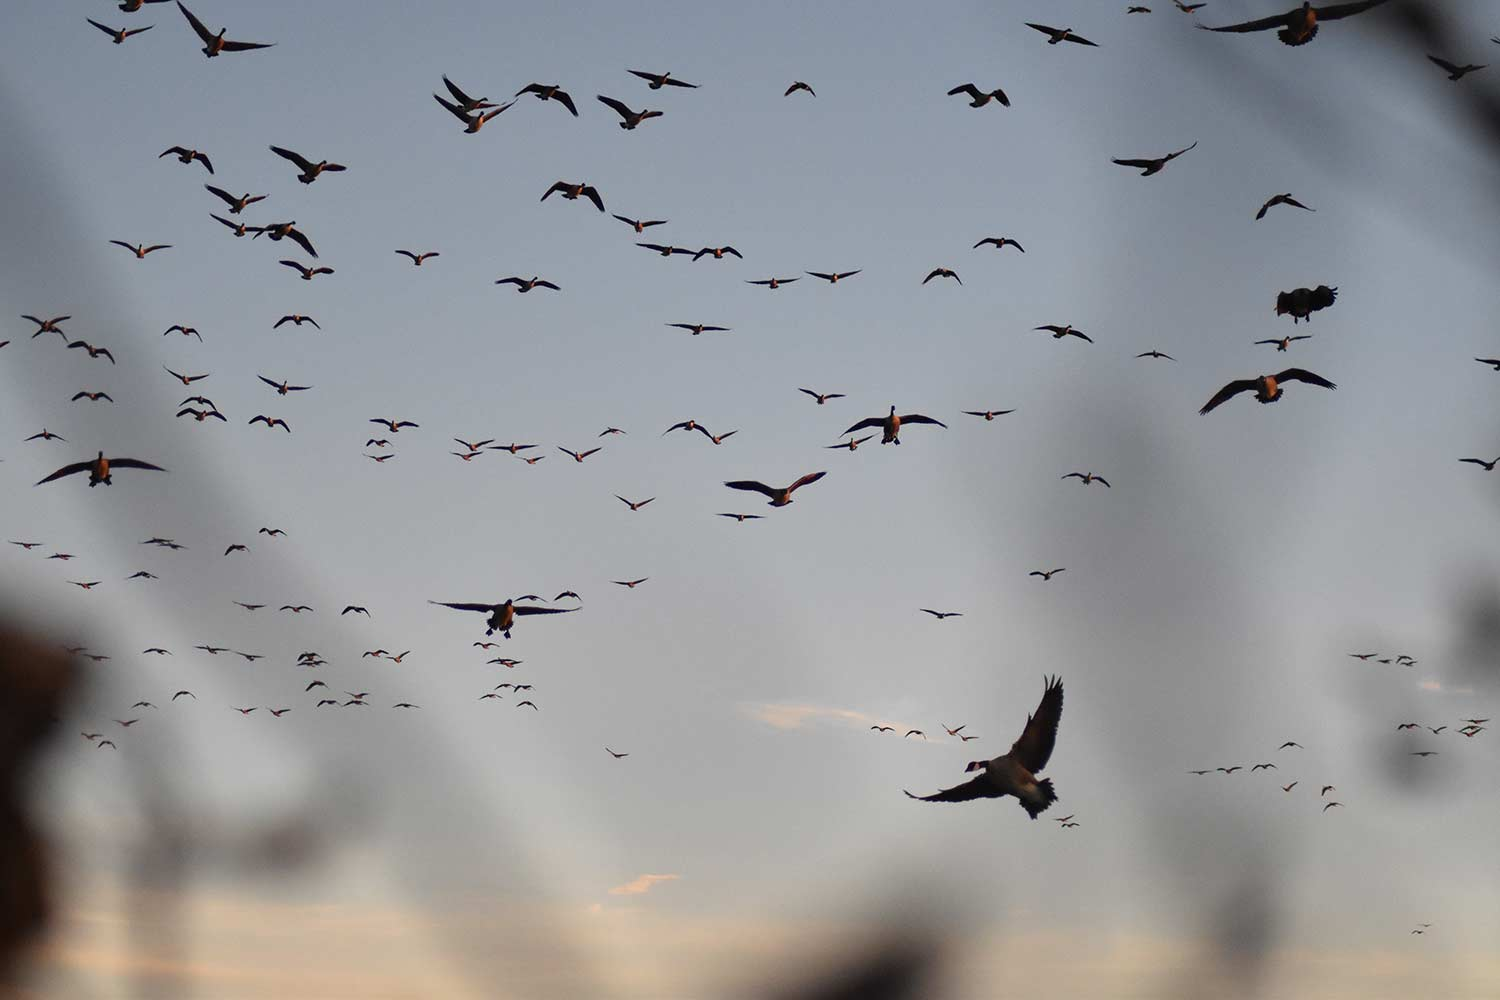 A flock of geese flying in the air